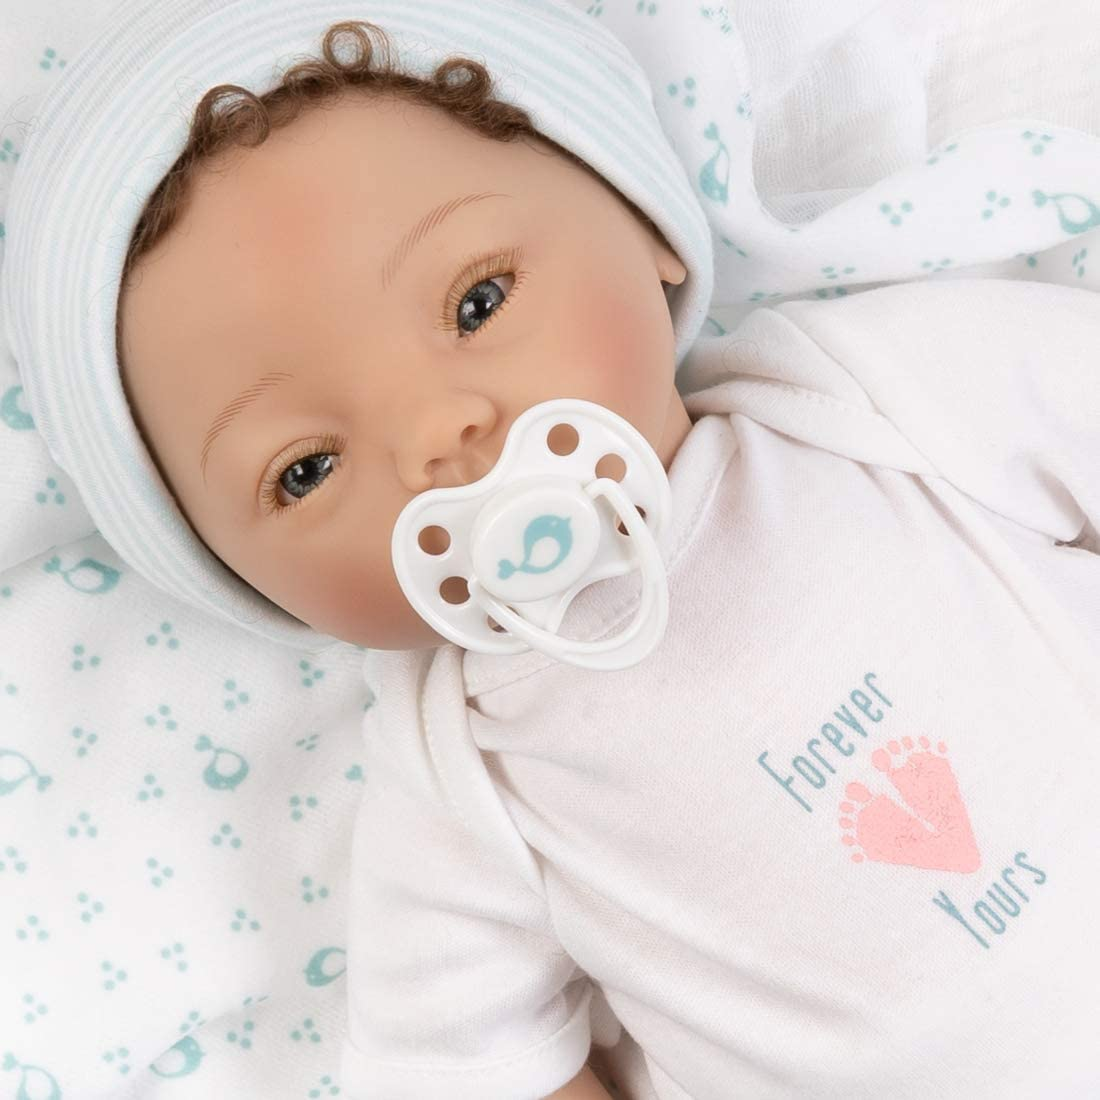 Paradise Galleries Realistic Popular products Newborn Baby Rooted H with Doll Boy Max 85% OFF